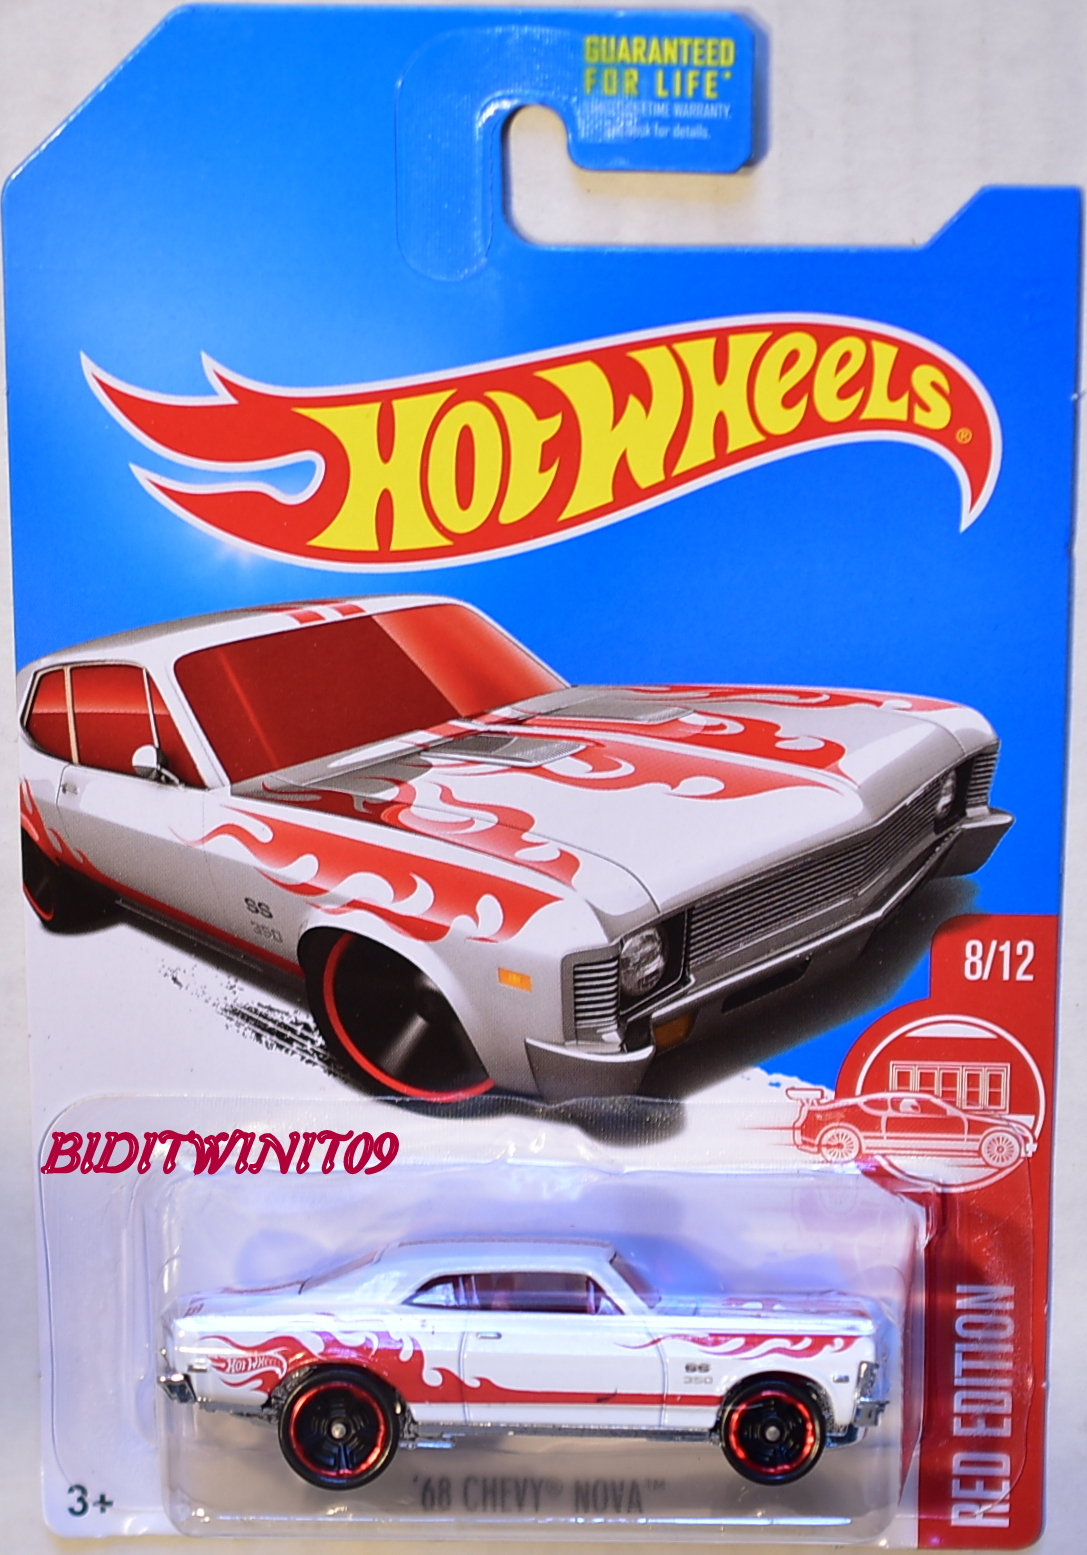 HOT WHEELS 2017 RED EDITION '68 CHEVY NOVA #8/12 TARGET EXCLUSIVE